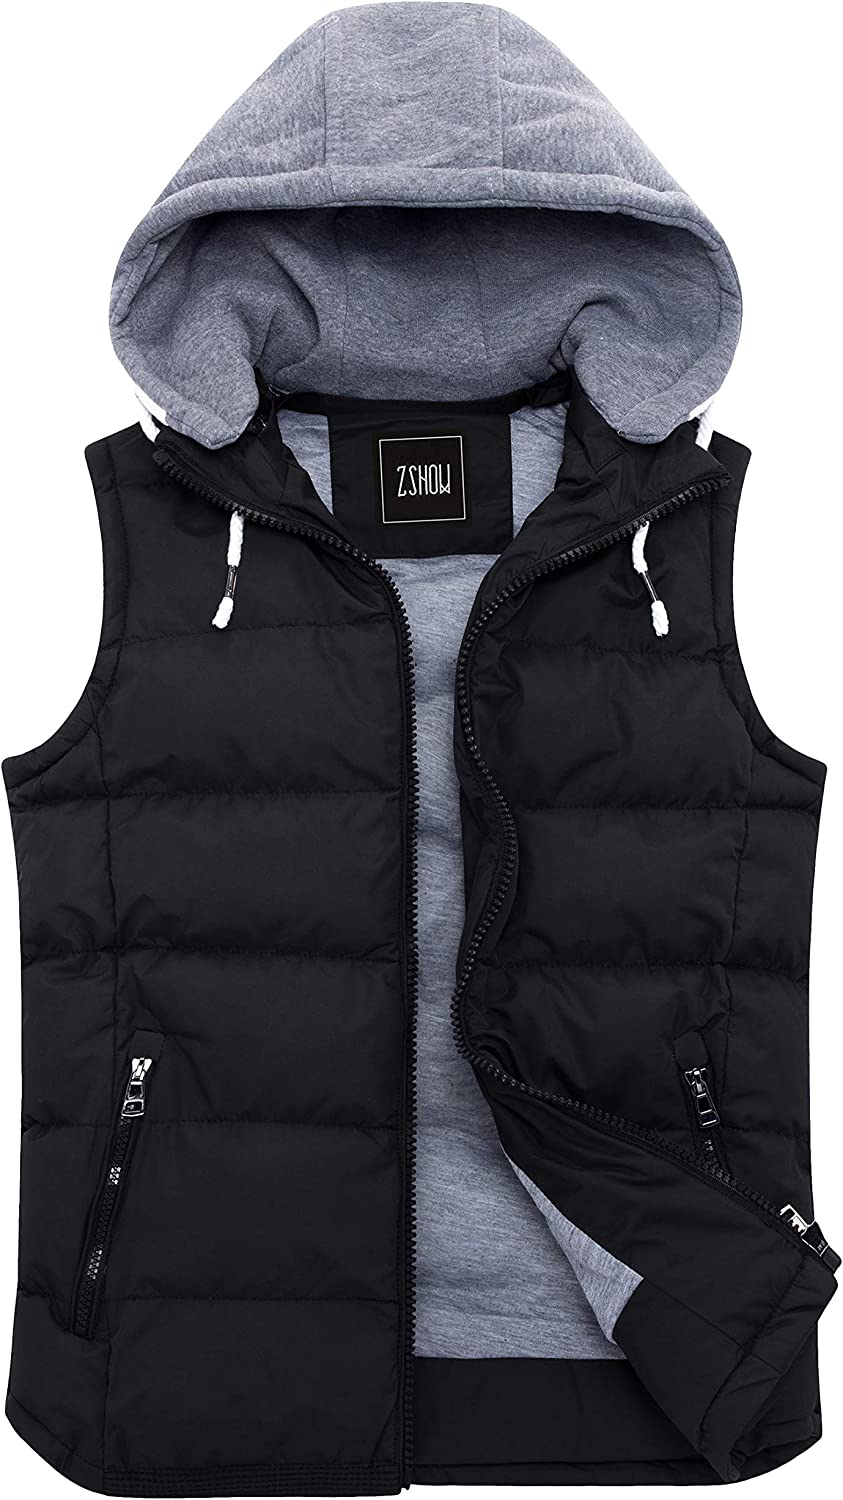 ZSHOW Women's Winter Padded Vest Removable Hooded Outwear Jacket: Clothing